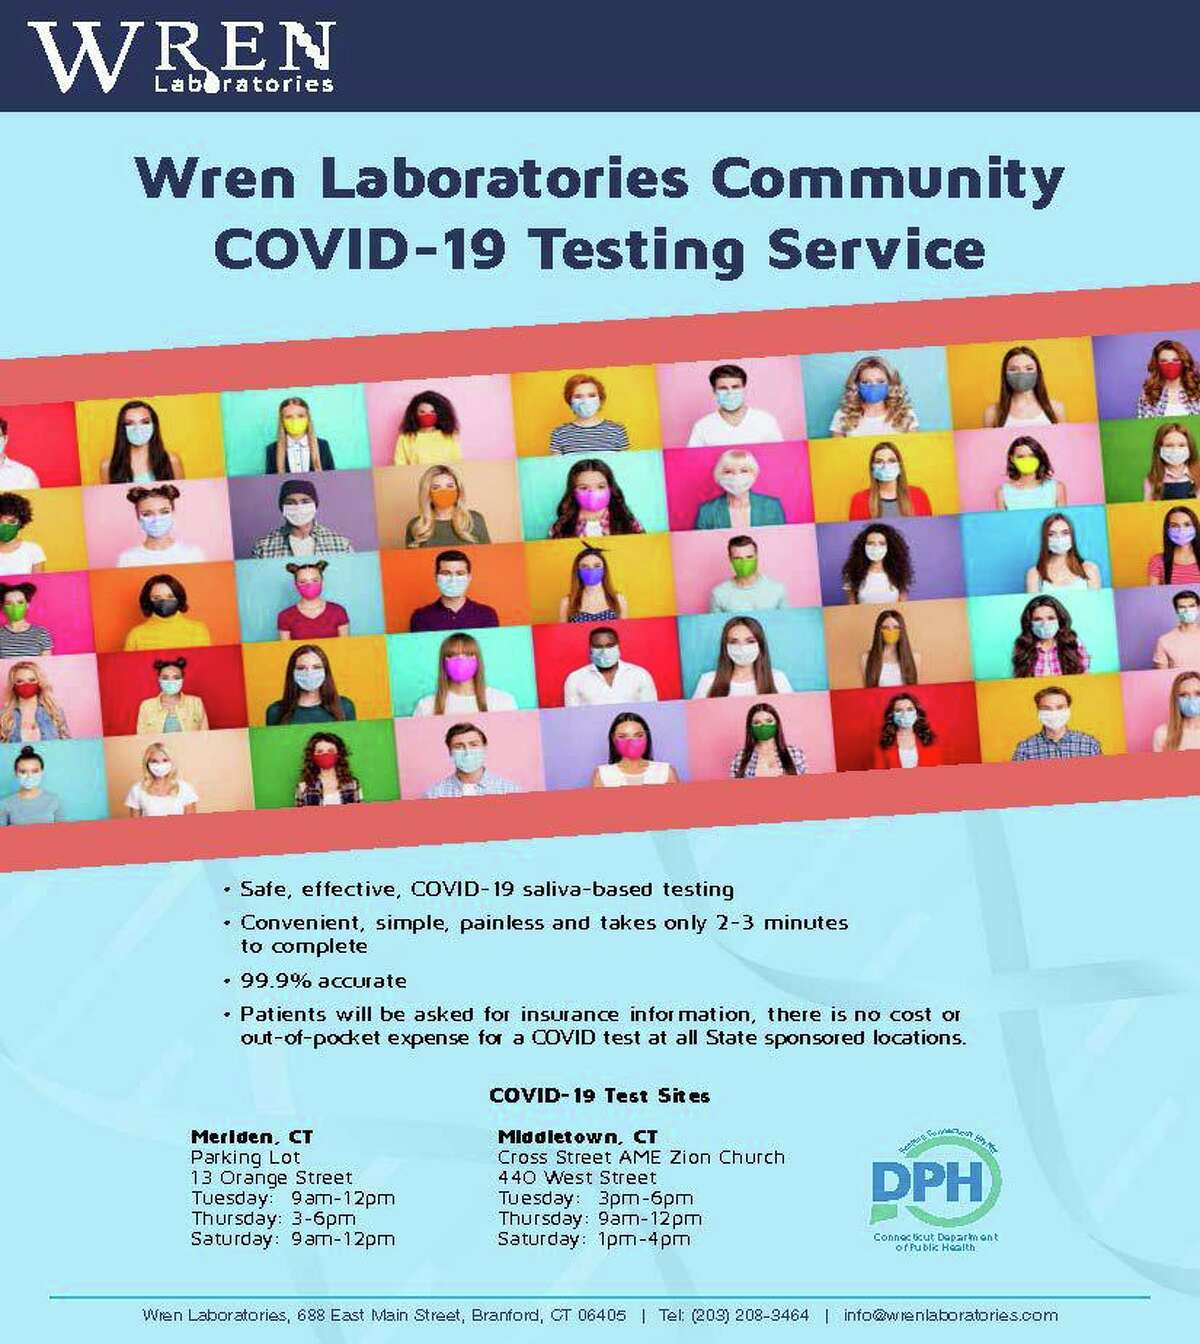 A new COVID-19 drive-up testing site is opening in Middletown at the Cross Street AME Zion Church at 440 West St.